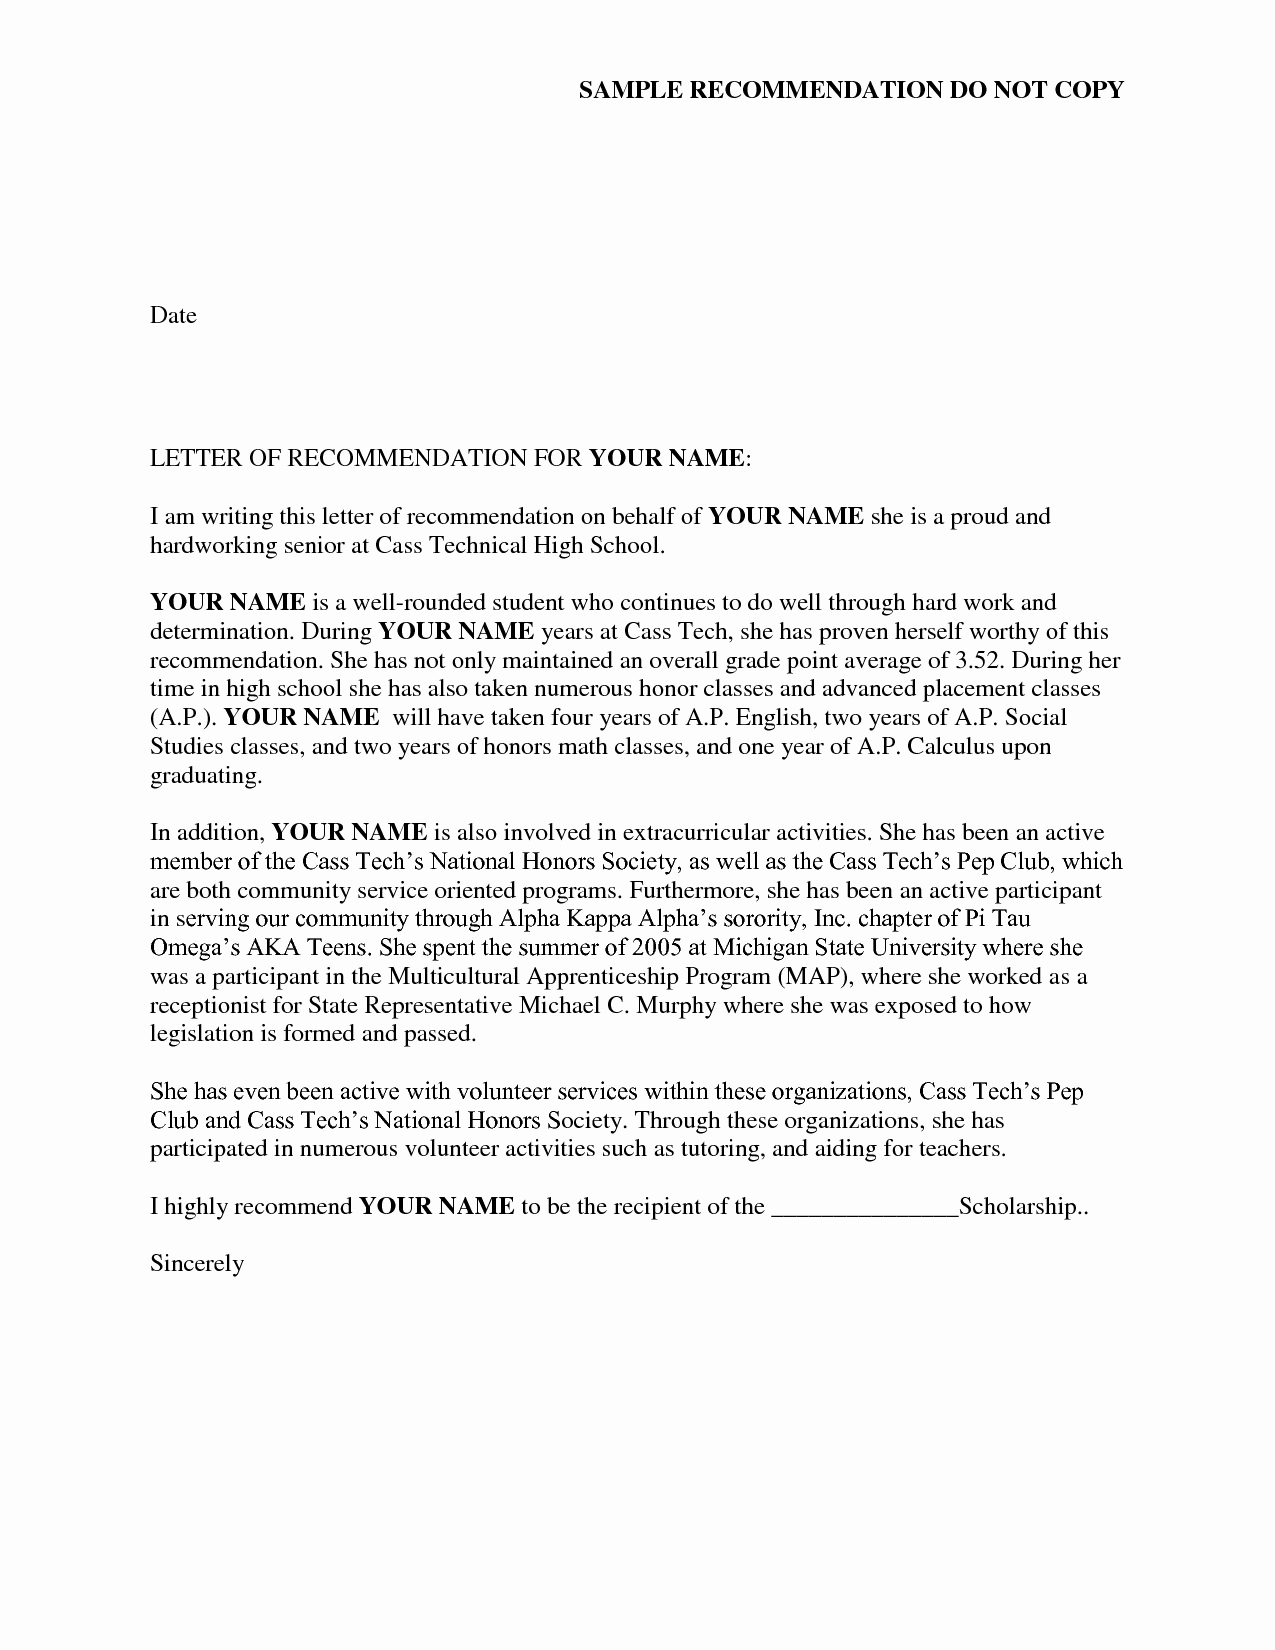 Letter Of Recommendation Letter Template Unique Reference Letter Of Re Mendation Sample